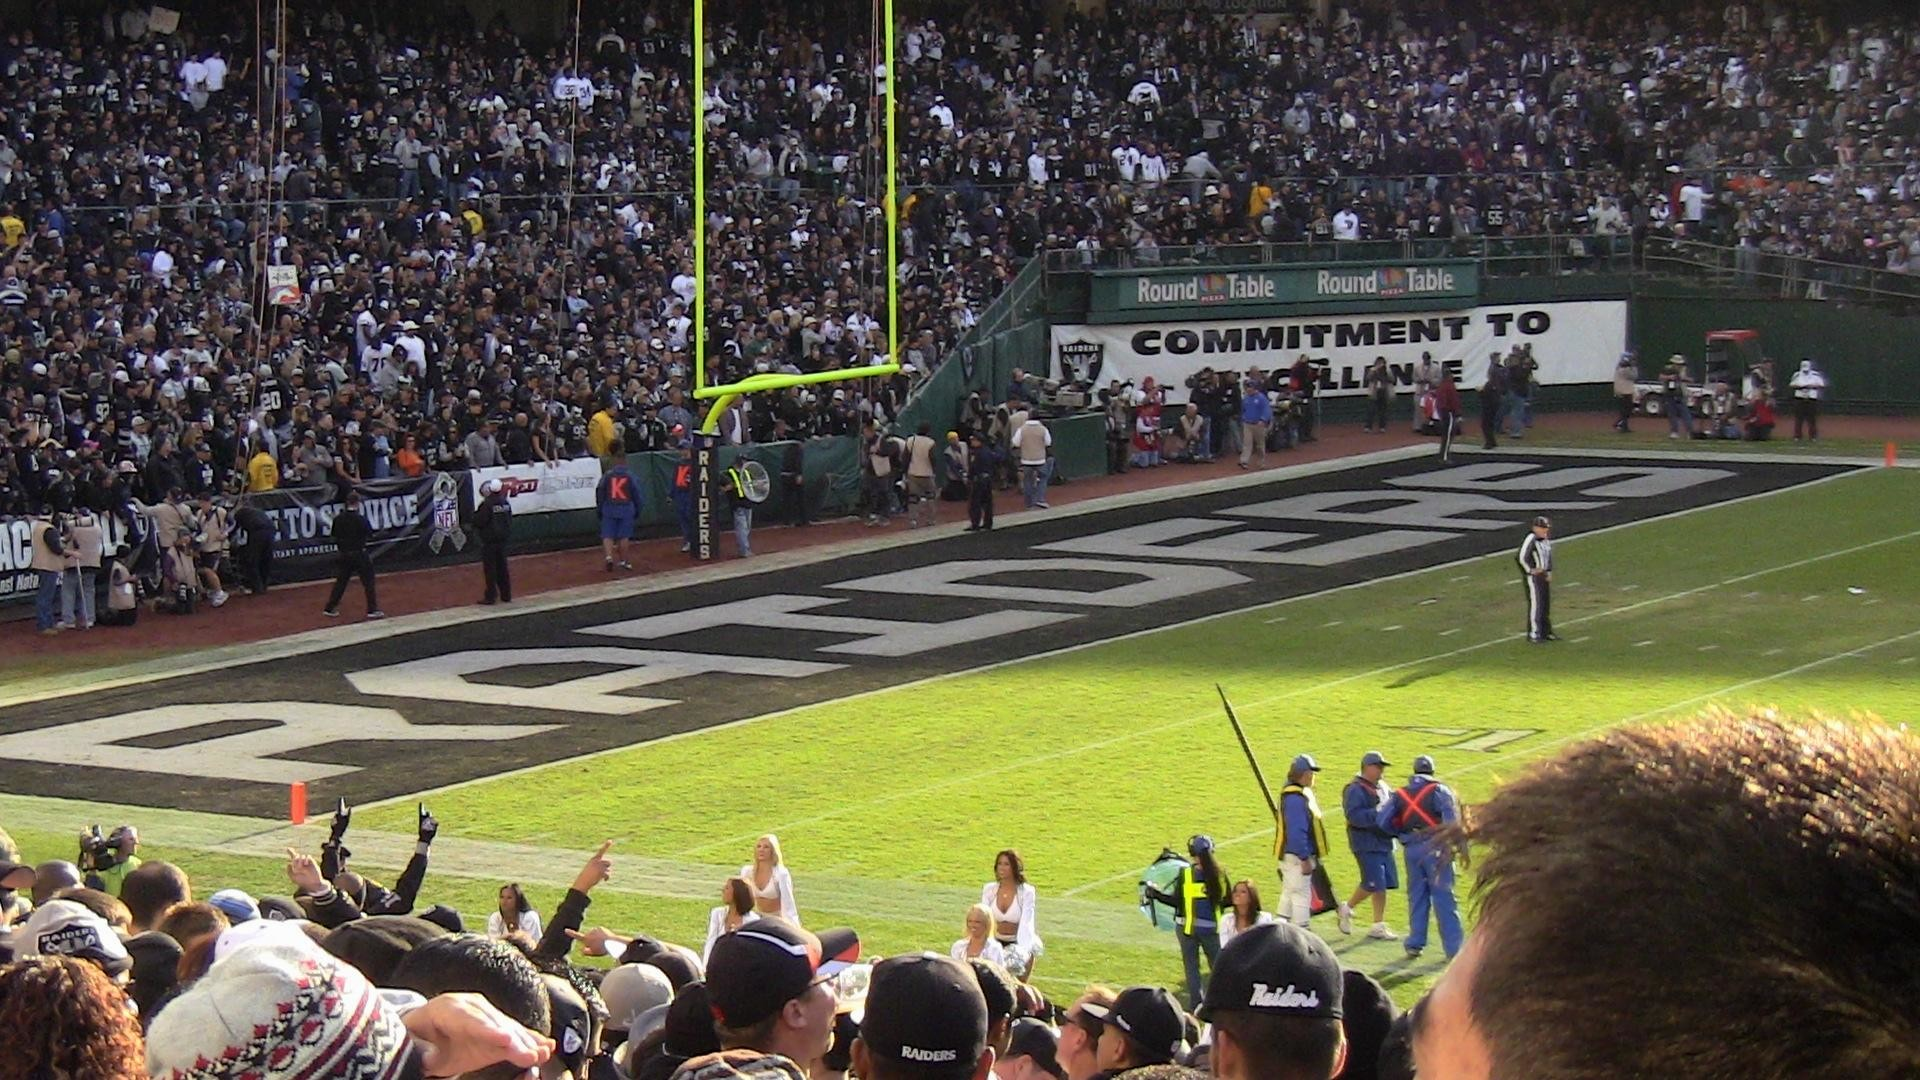 Oakland Raiders Desktop Pictures to Pin on Pinterest – PinsDaddy